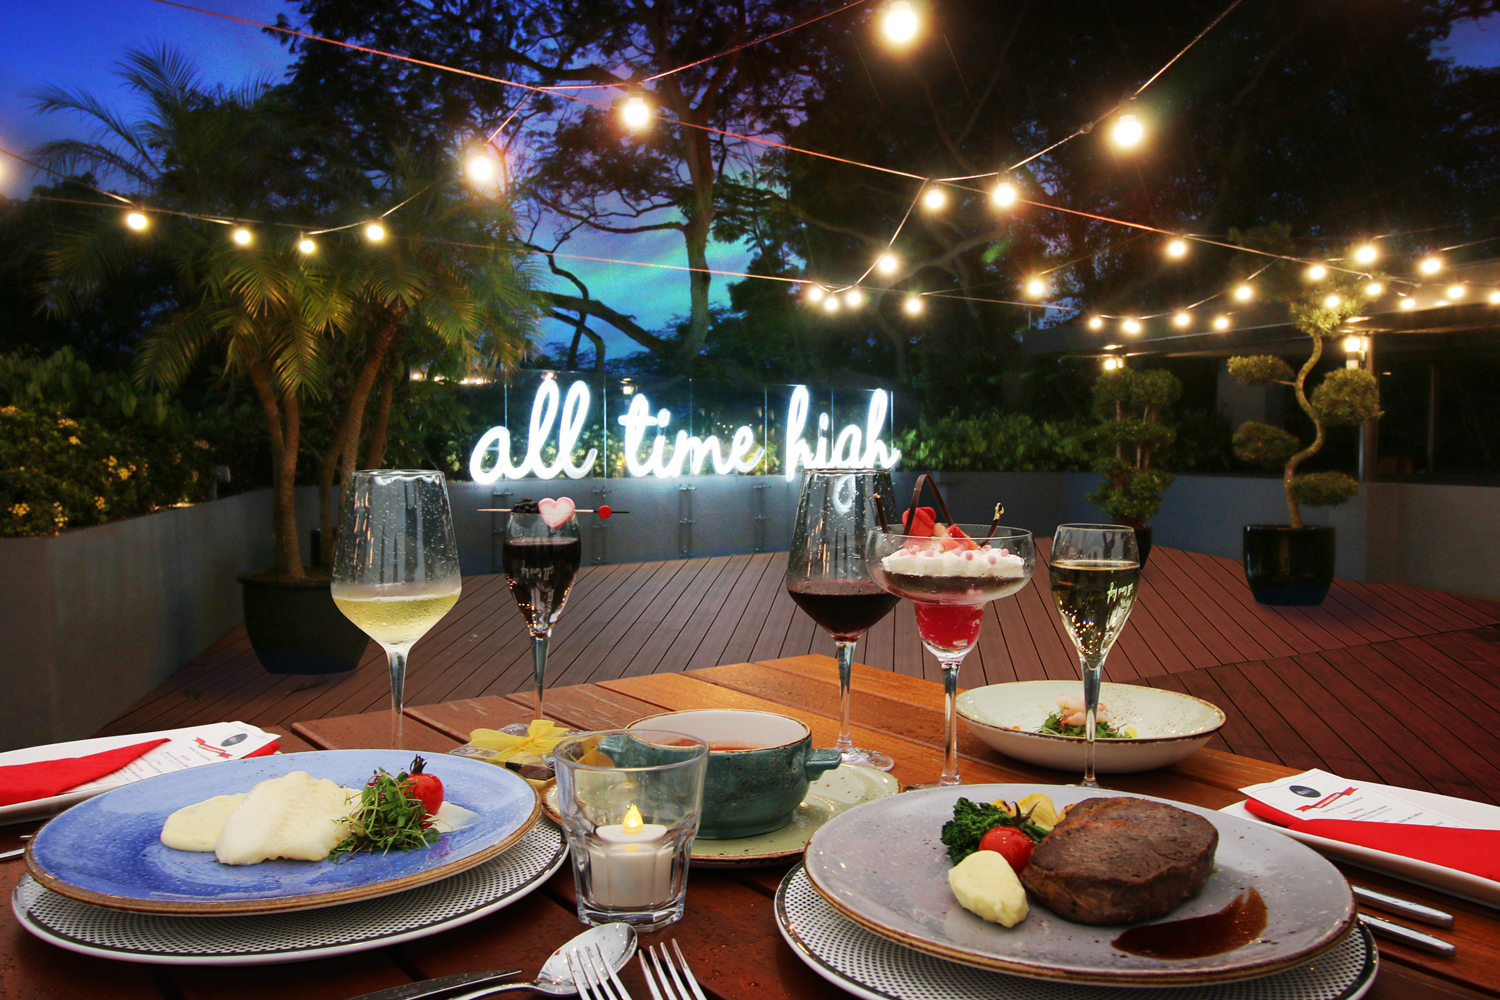 Faber Peak has the best Valentine's Day date all planned for you and your beau - Alvinology